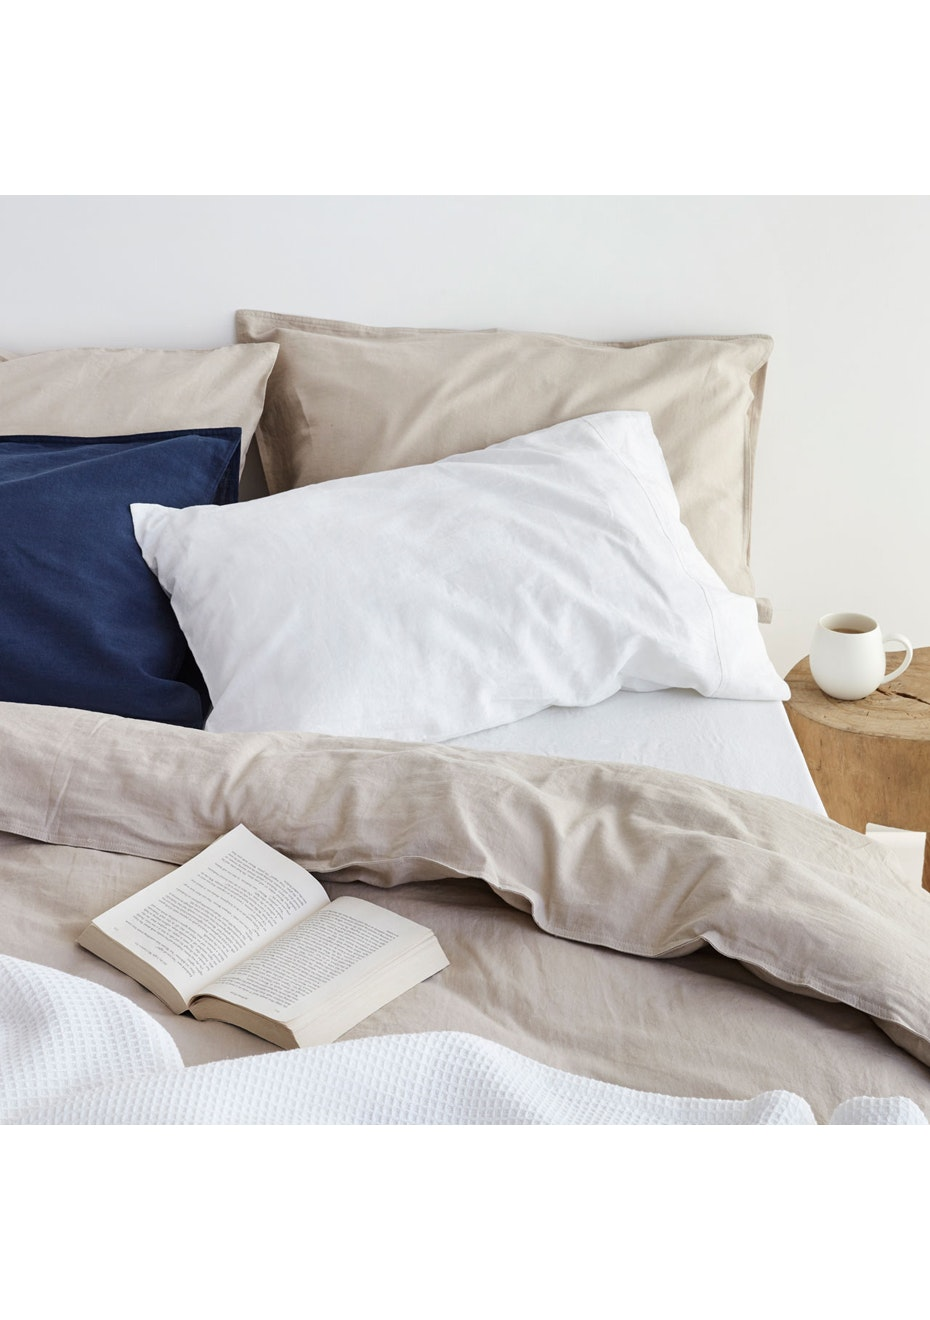 Sogno Linen Cotton Duvet Cover Set Cappuccino Taupe King Bed